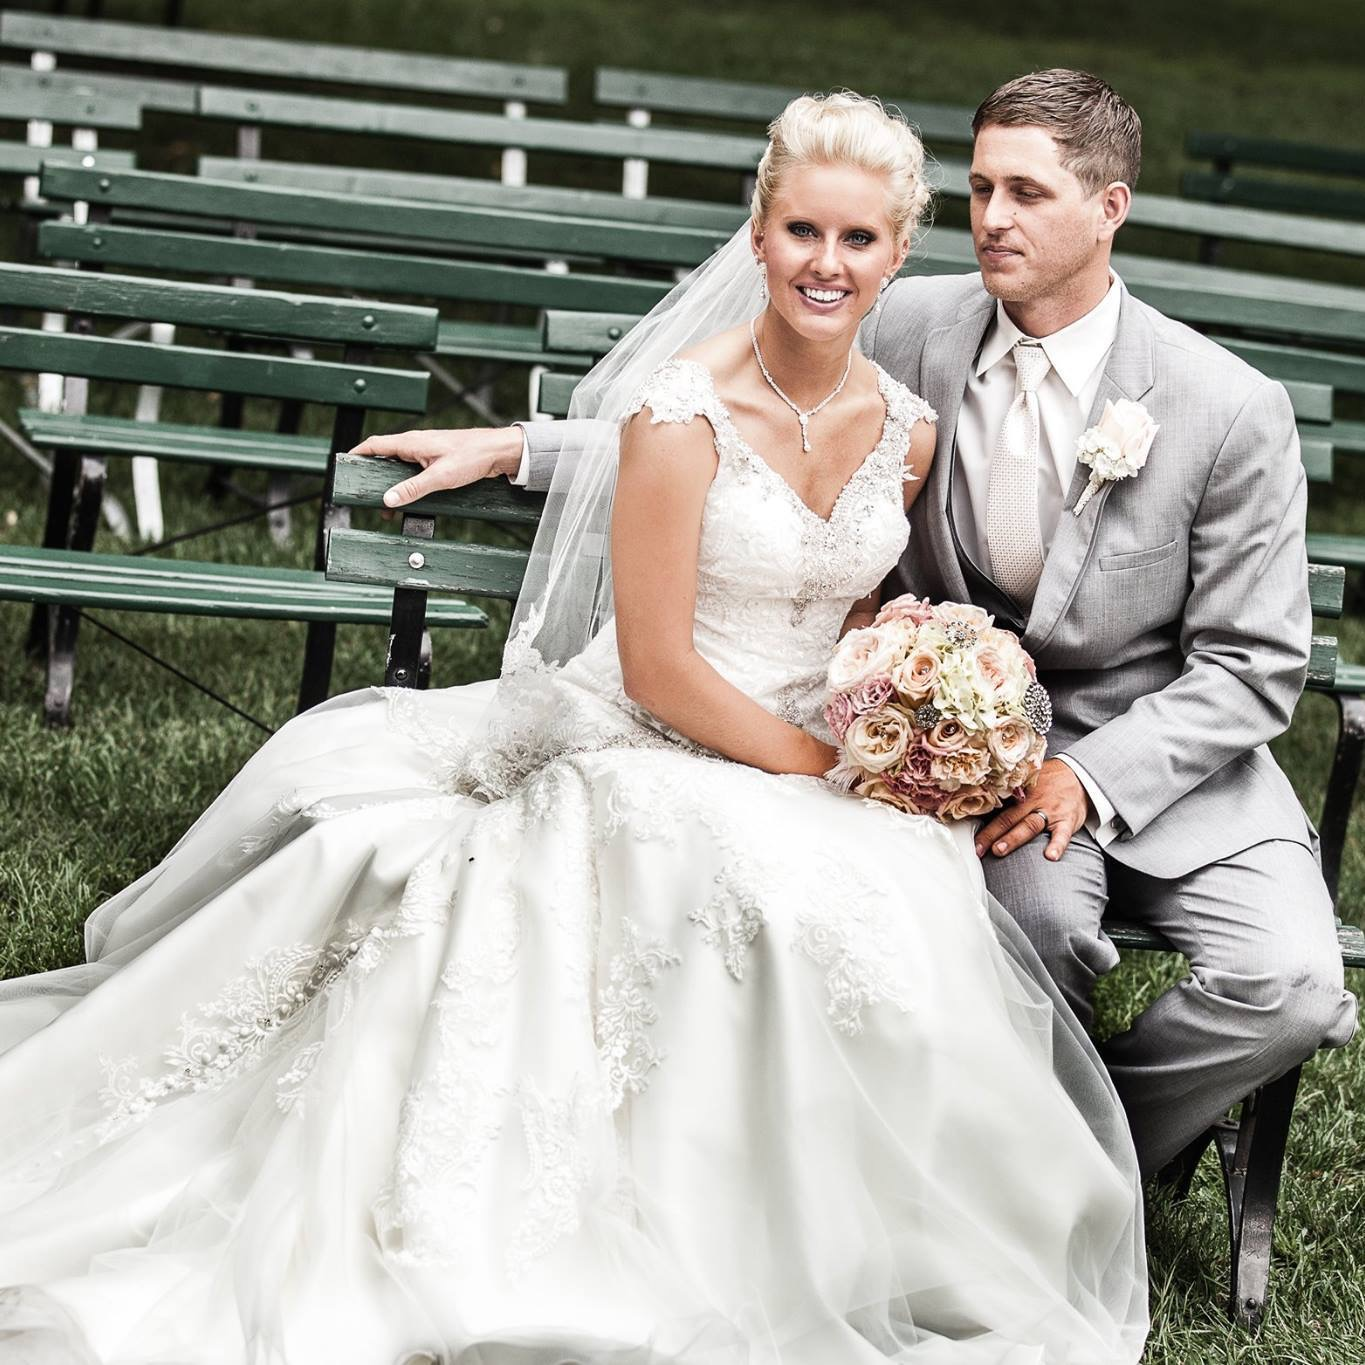 bride-and-groom-with-flowers-on-bench